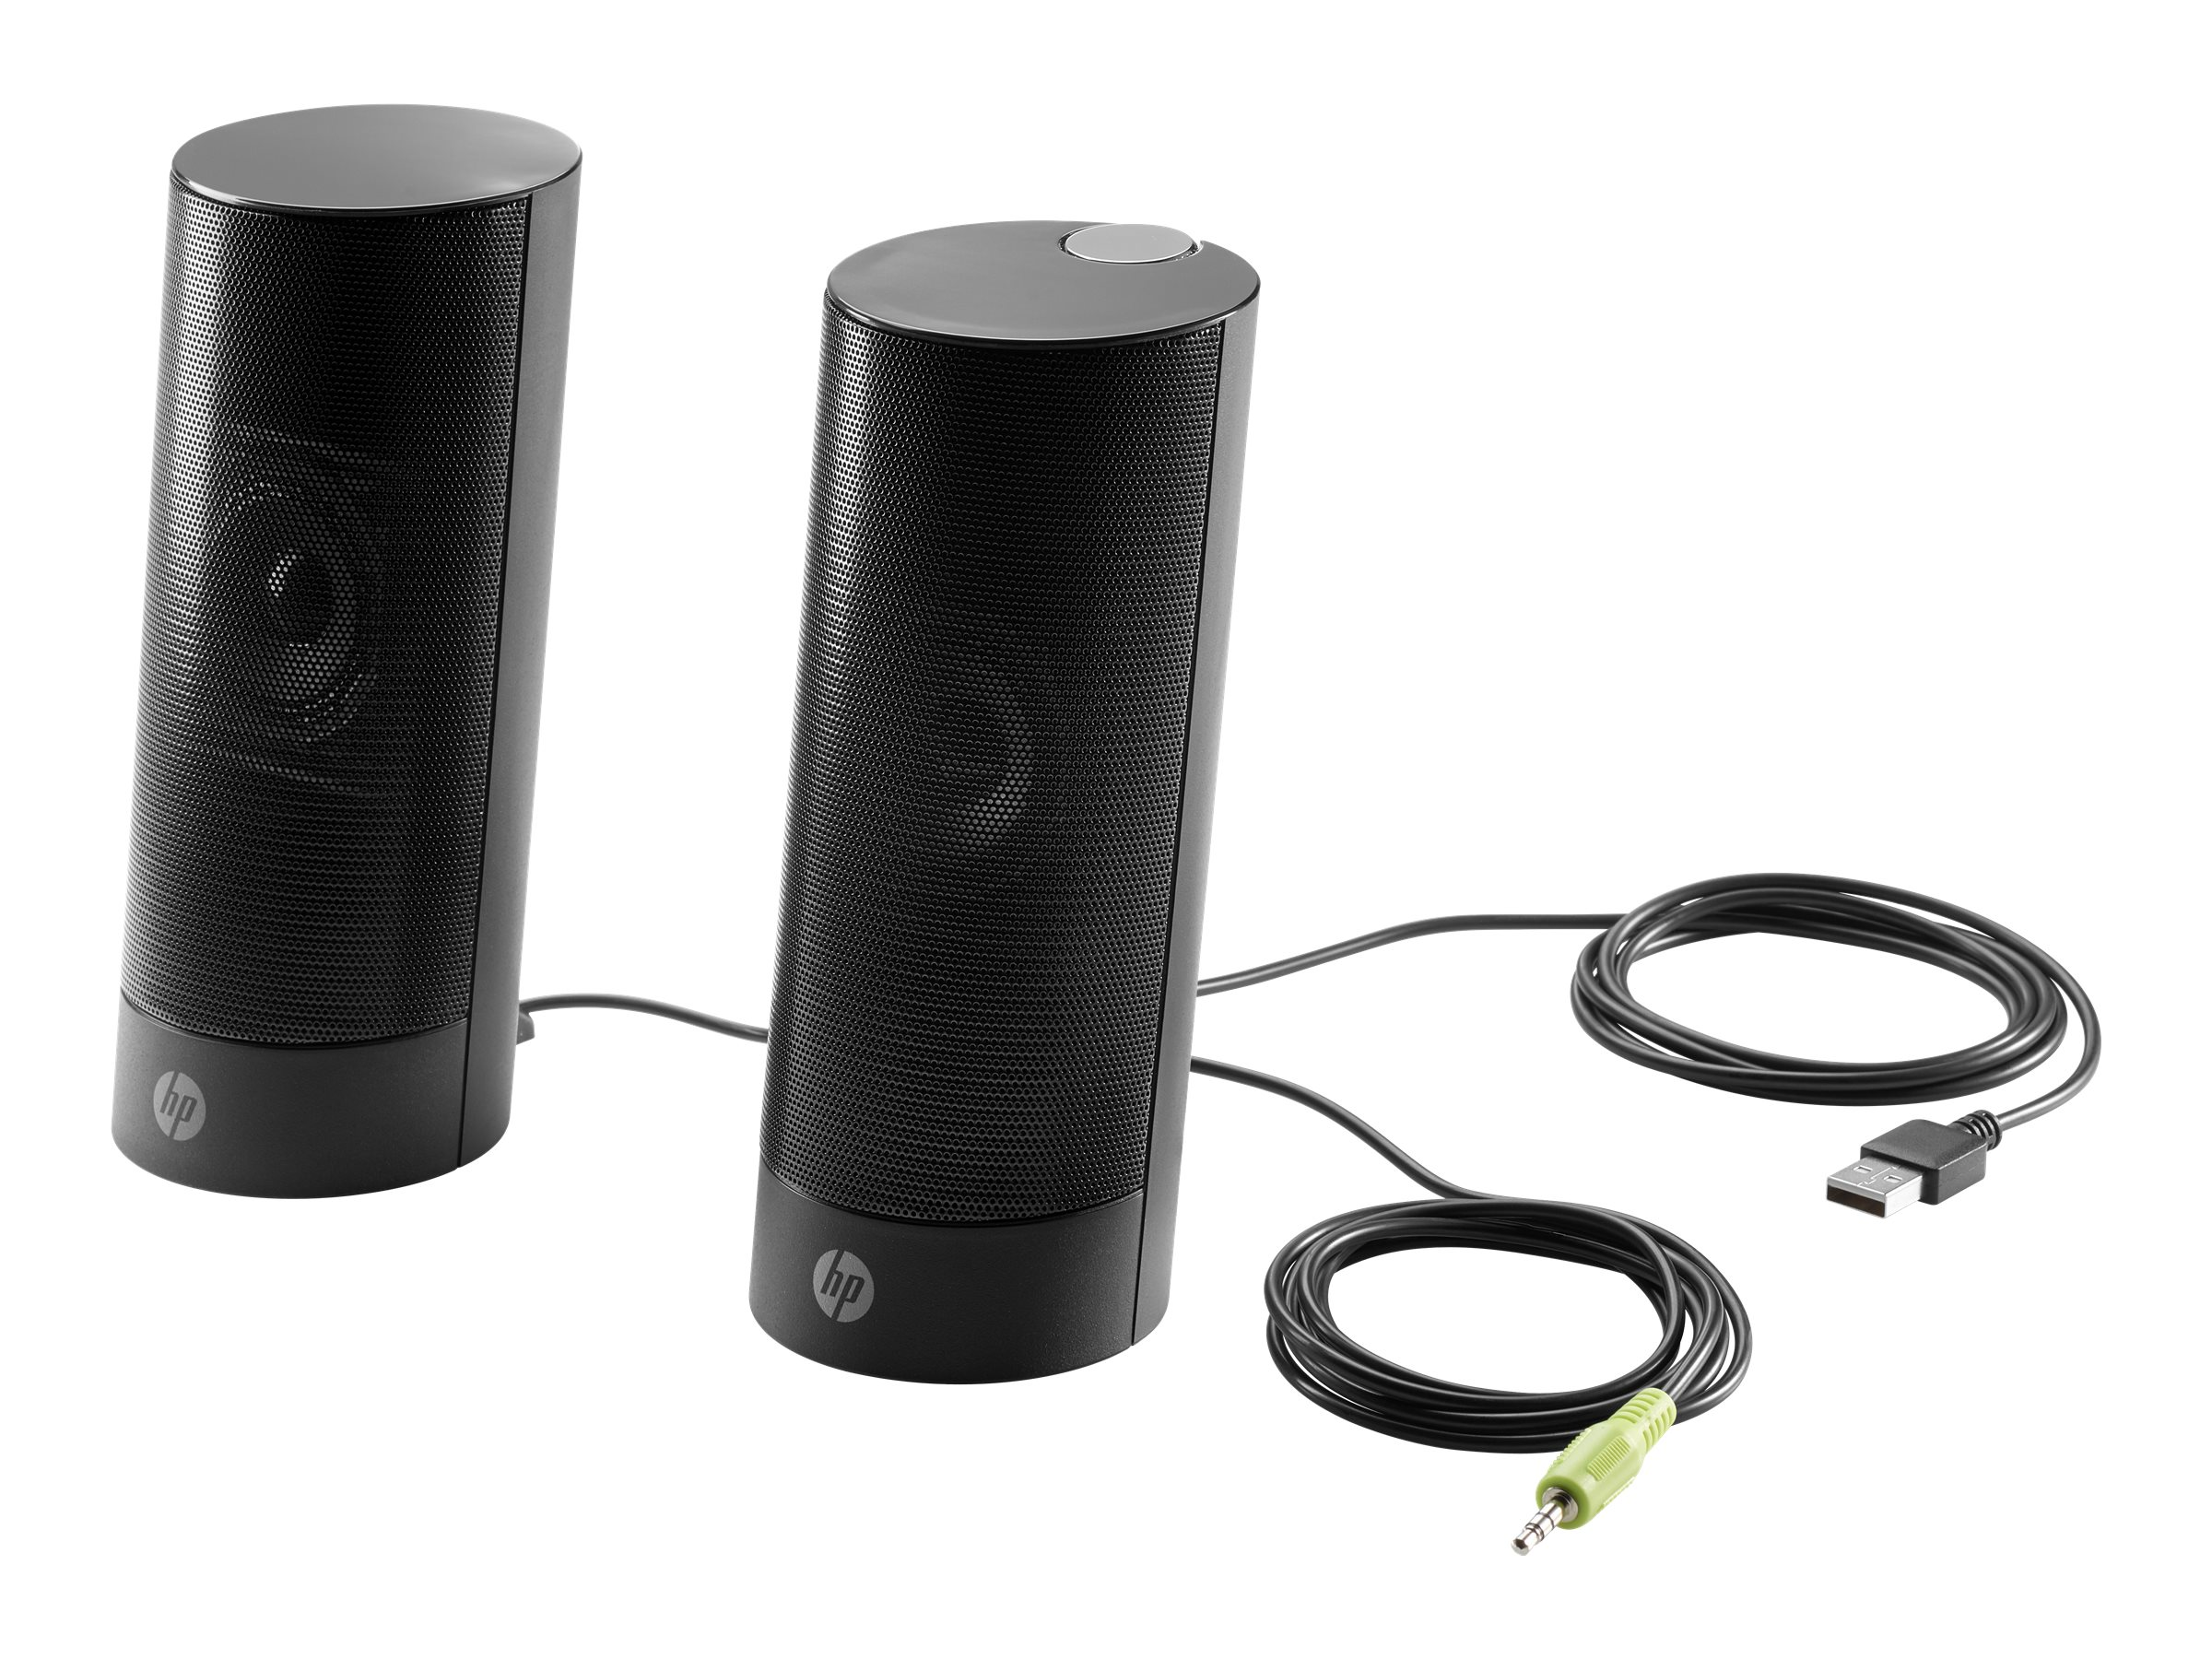 HP USB Business Speakers v2, N3R89AA